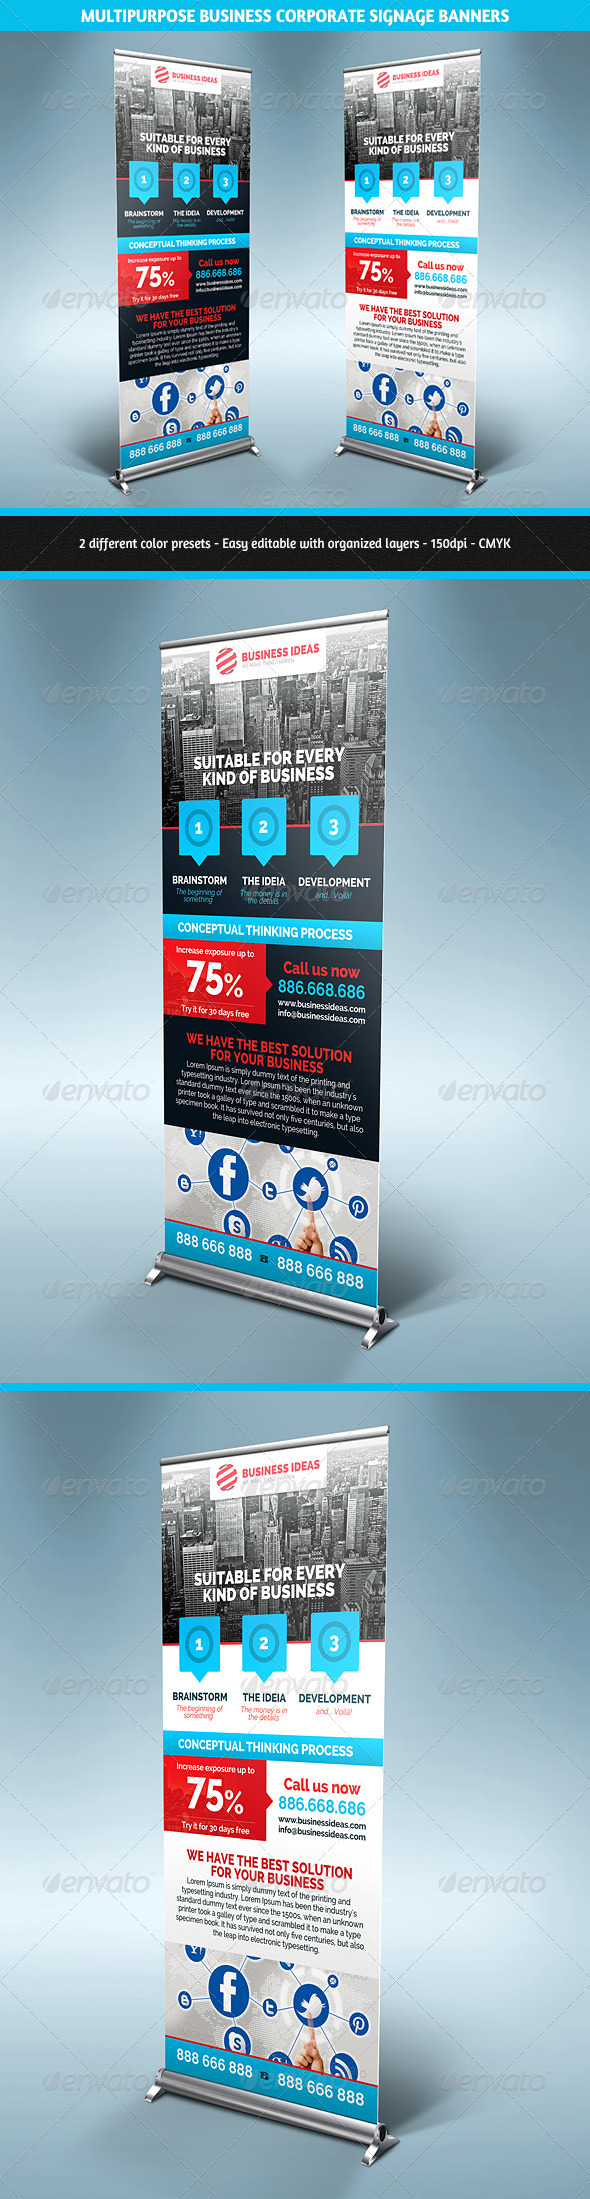 GraphicRiver Multipurpose Corporate Business Signage Banners 5411254